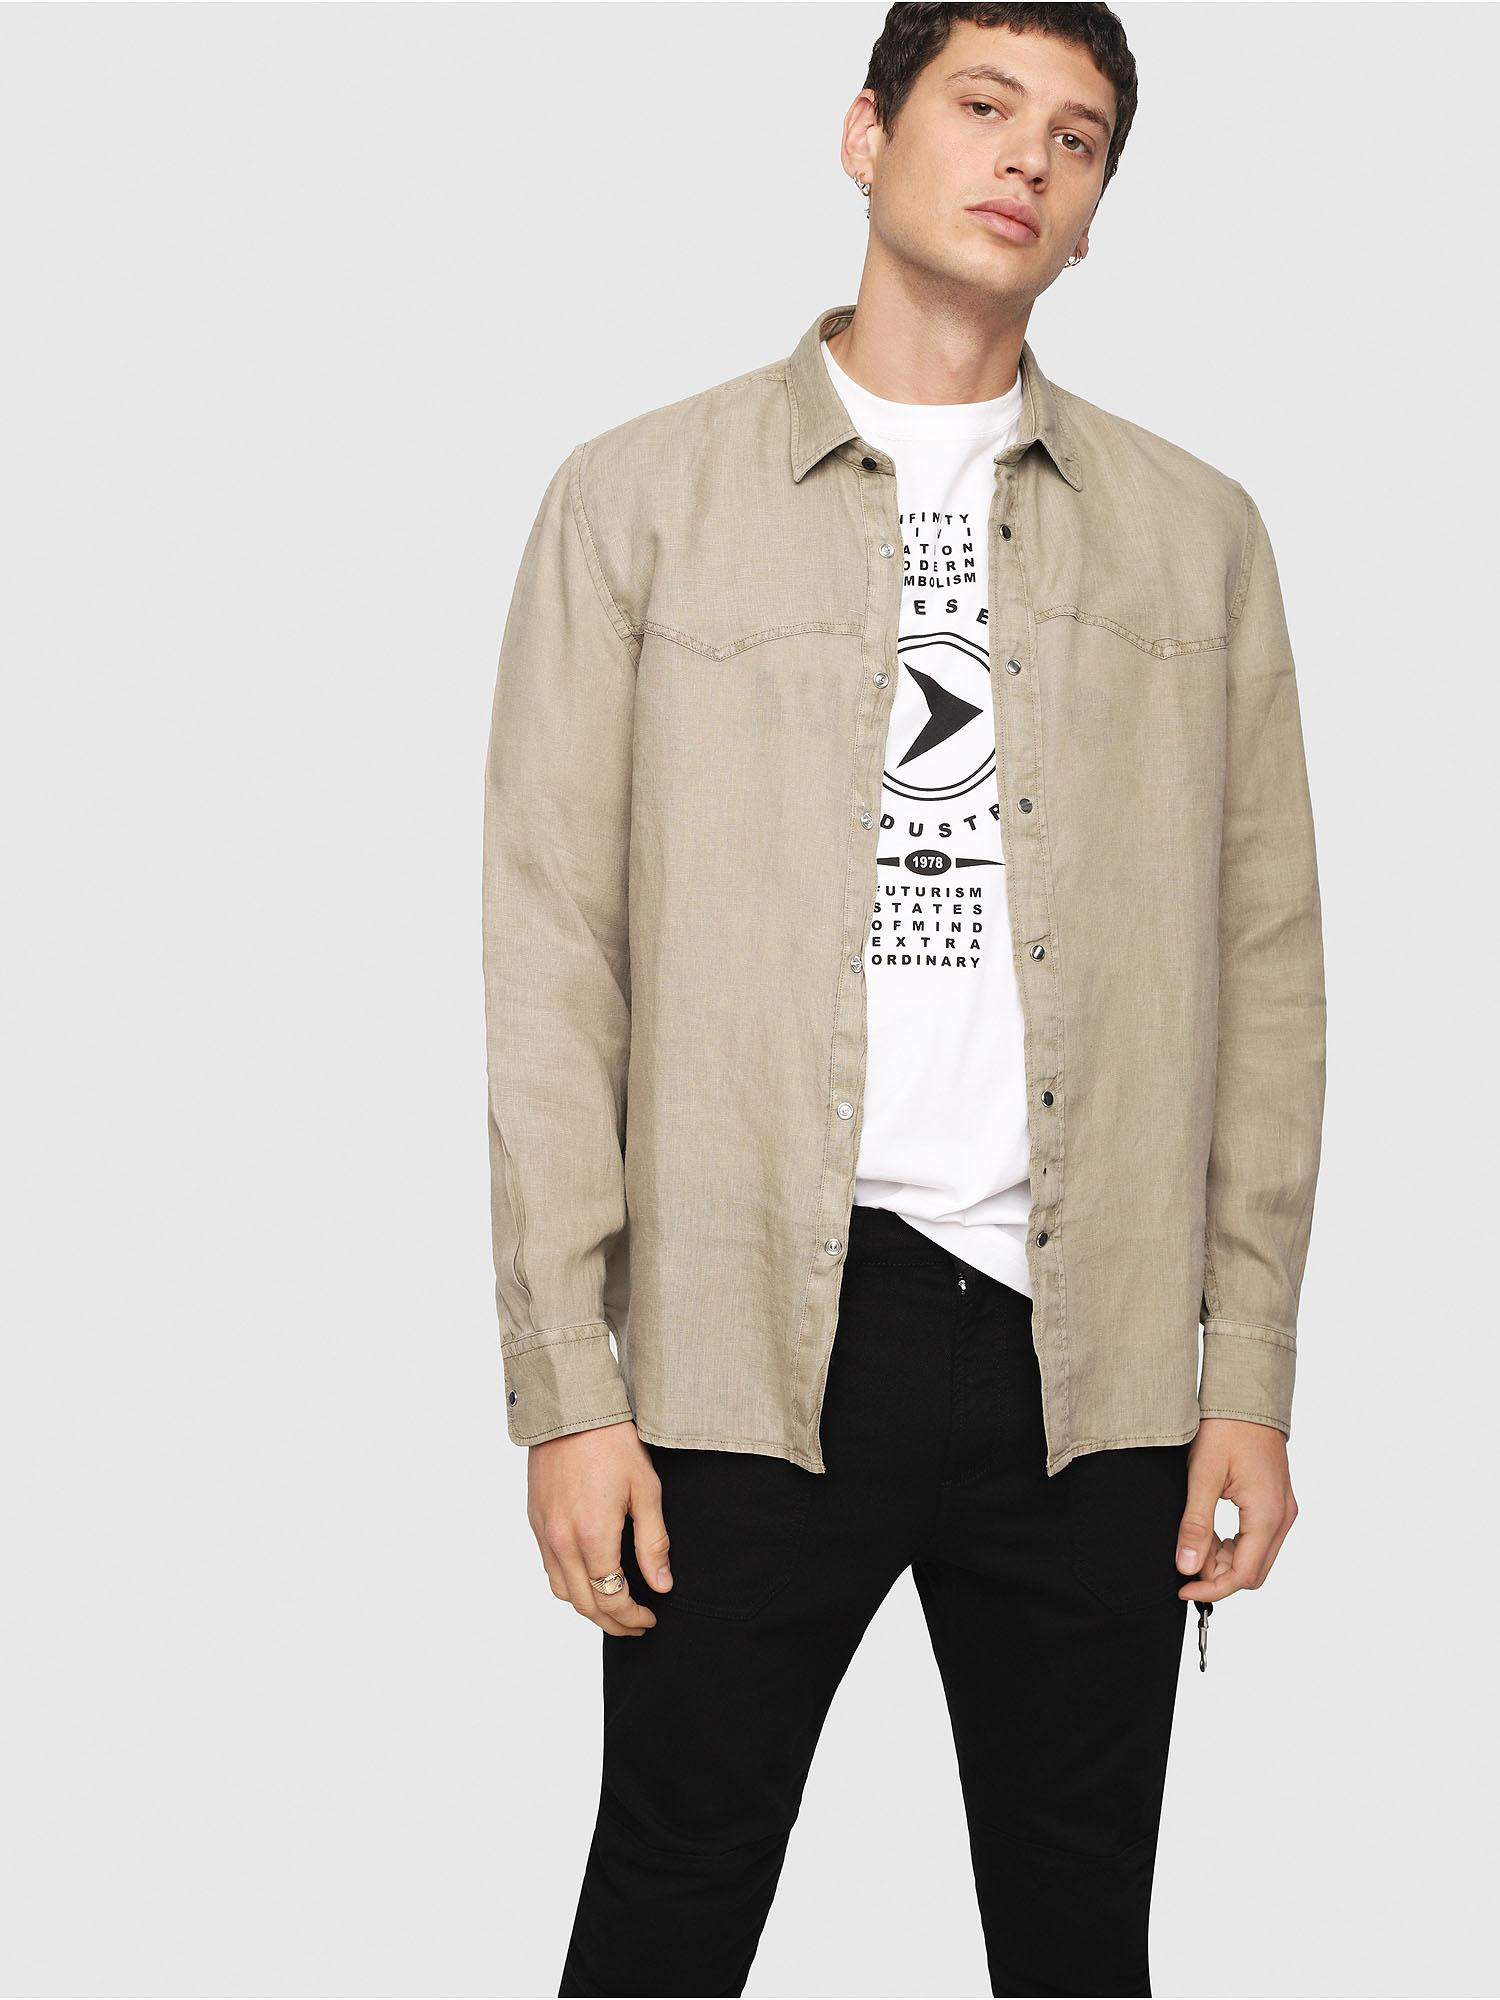 6daf52018f29 Lyst - DIESEL Linen Shirt With Metal Snap Buttons in Natural for Men